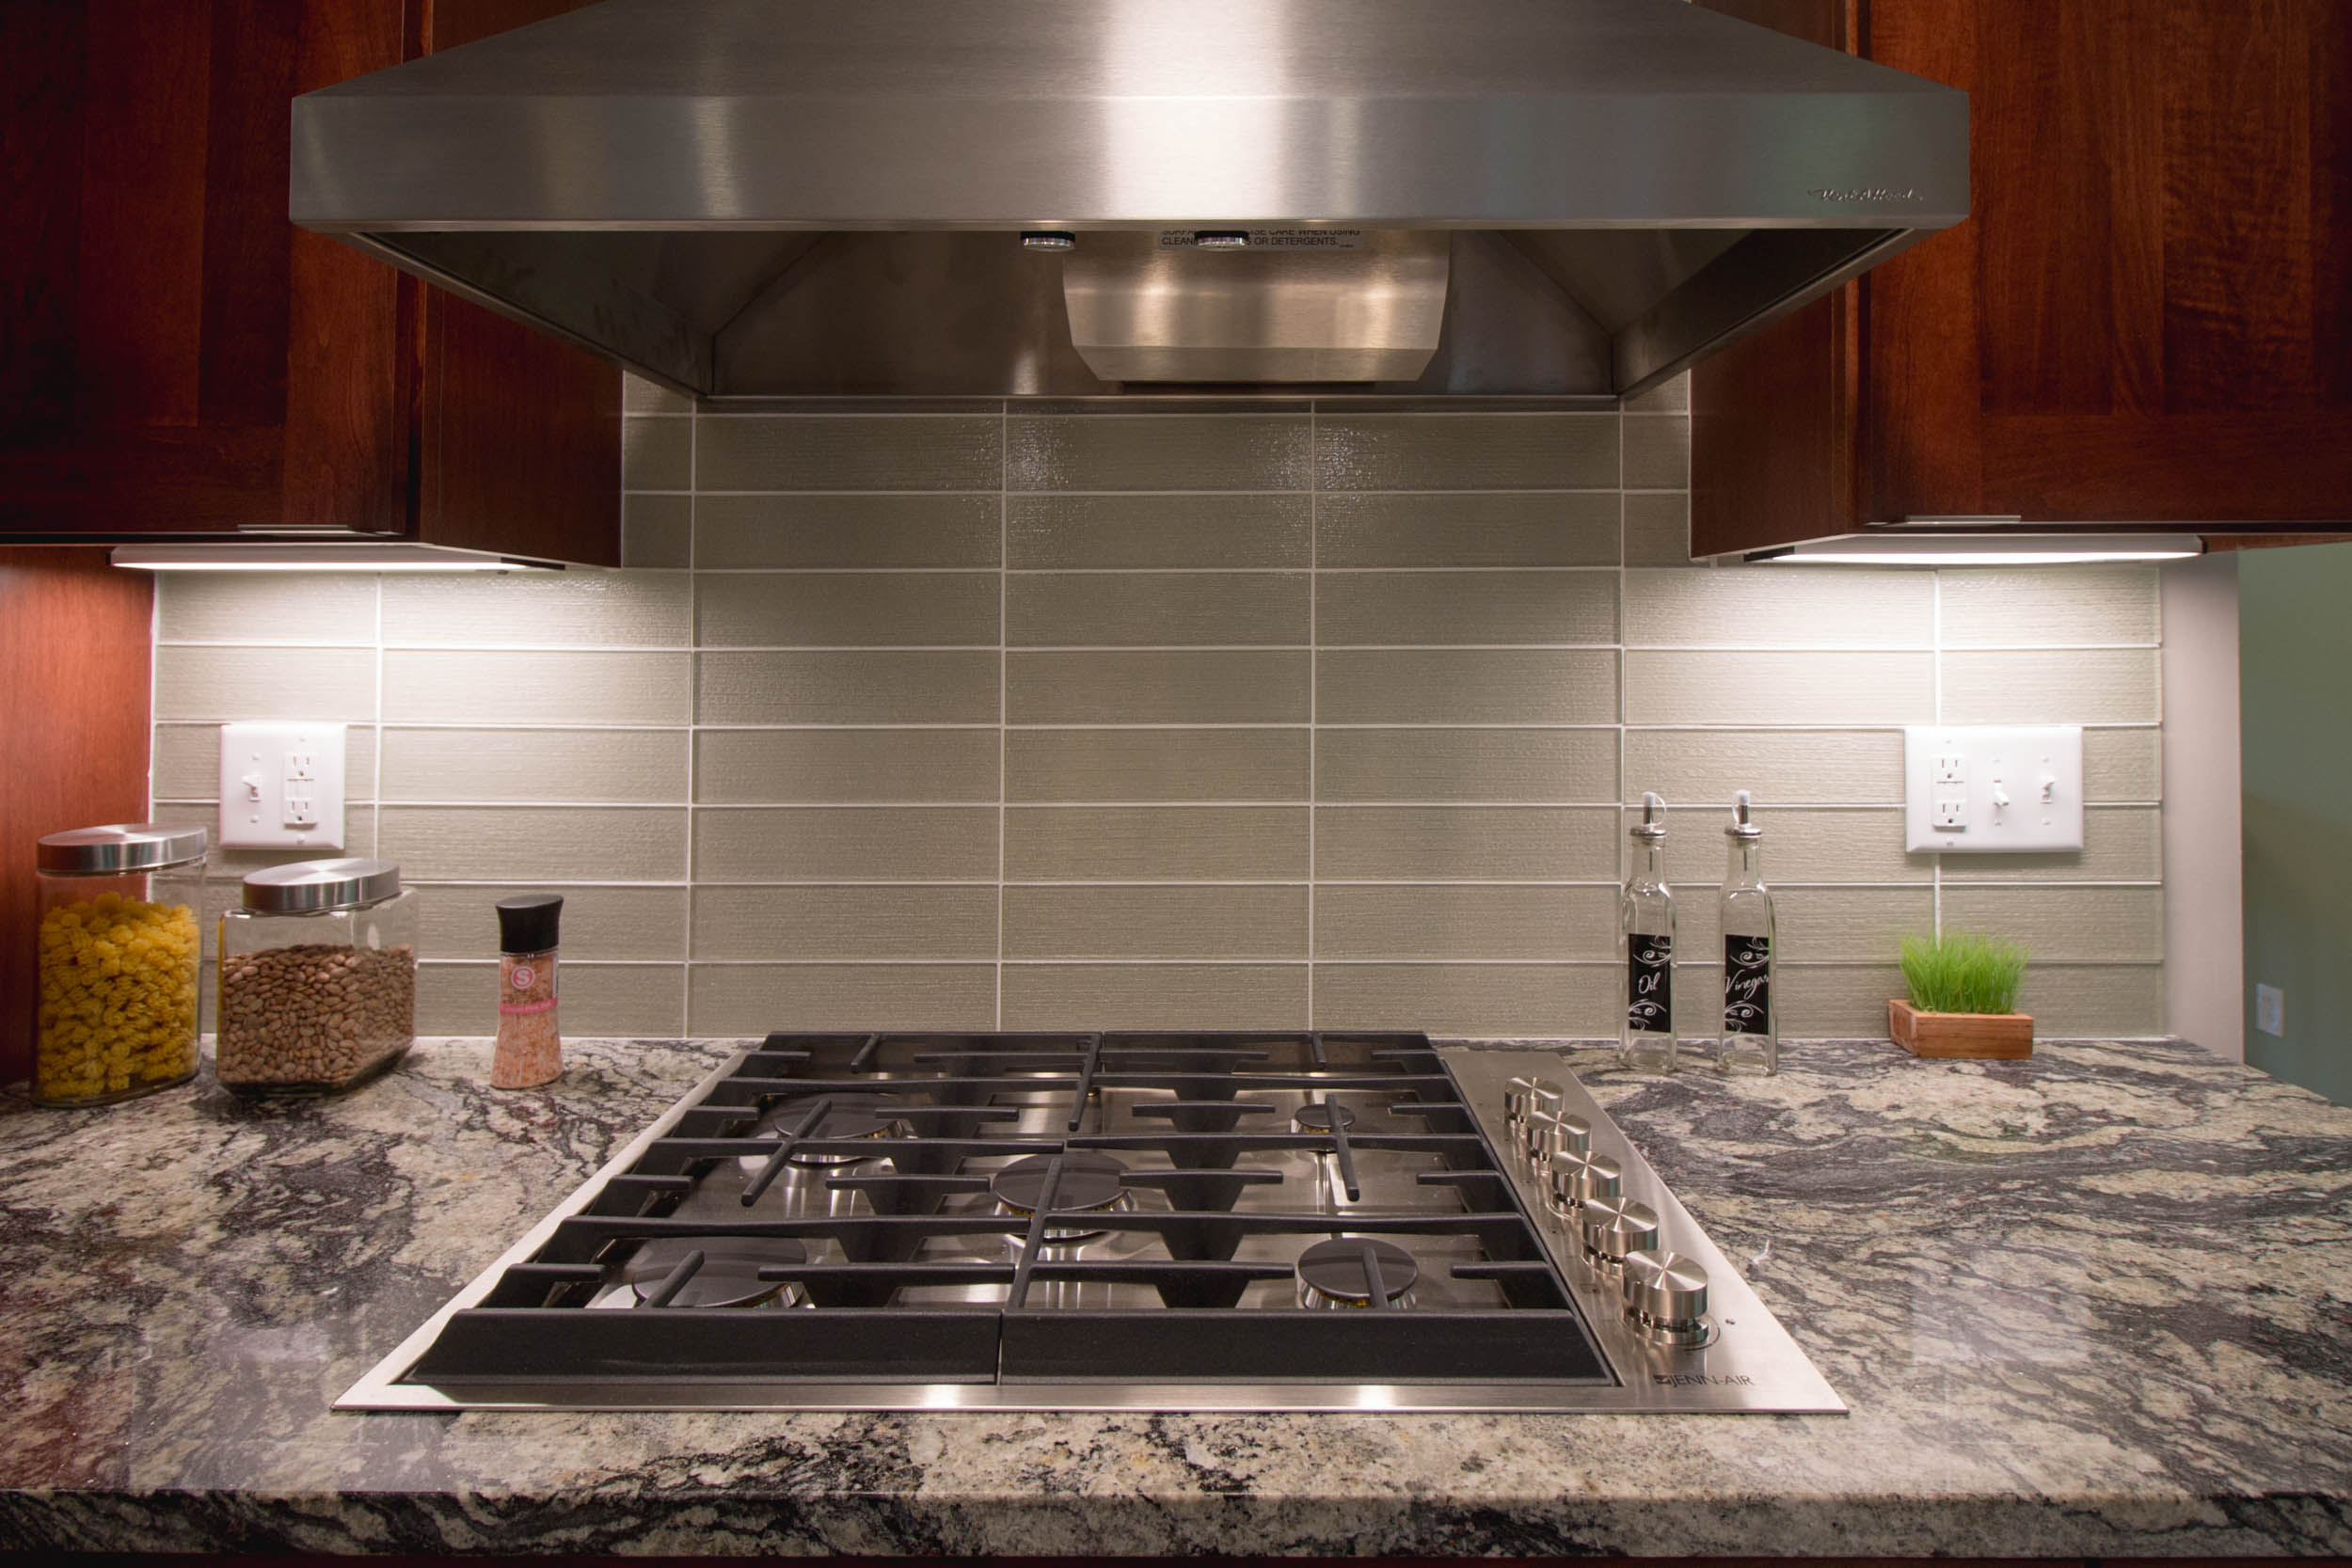 - This range hood was right-sized for the gas cooktop which it serves. PRO TIP: The lower you can place the range hood, the more odors and humidity it will be able to remove, using a lower fan speed.